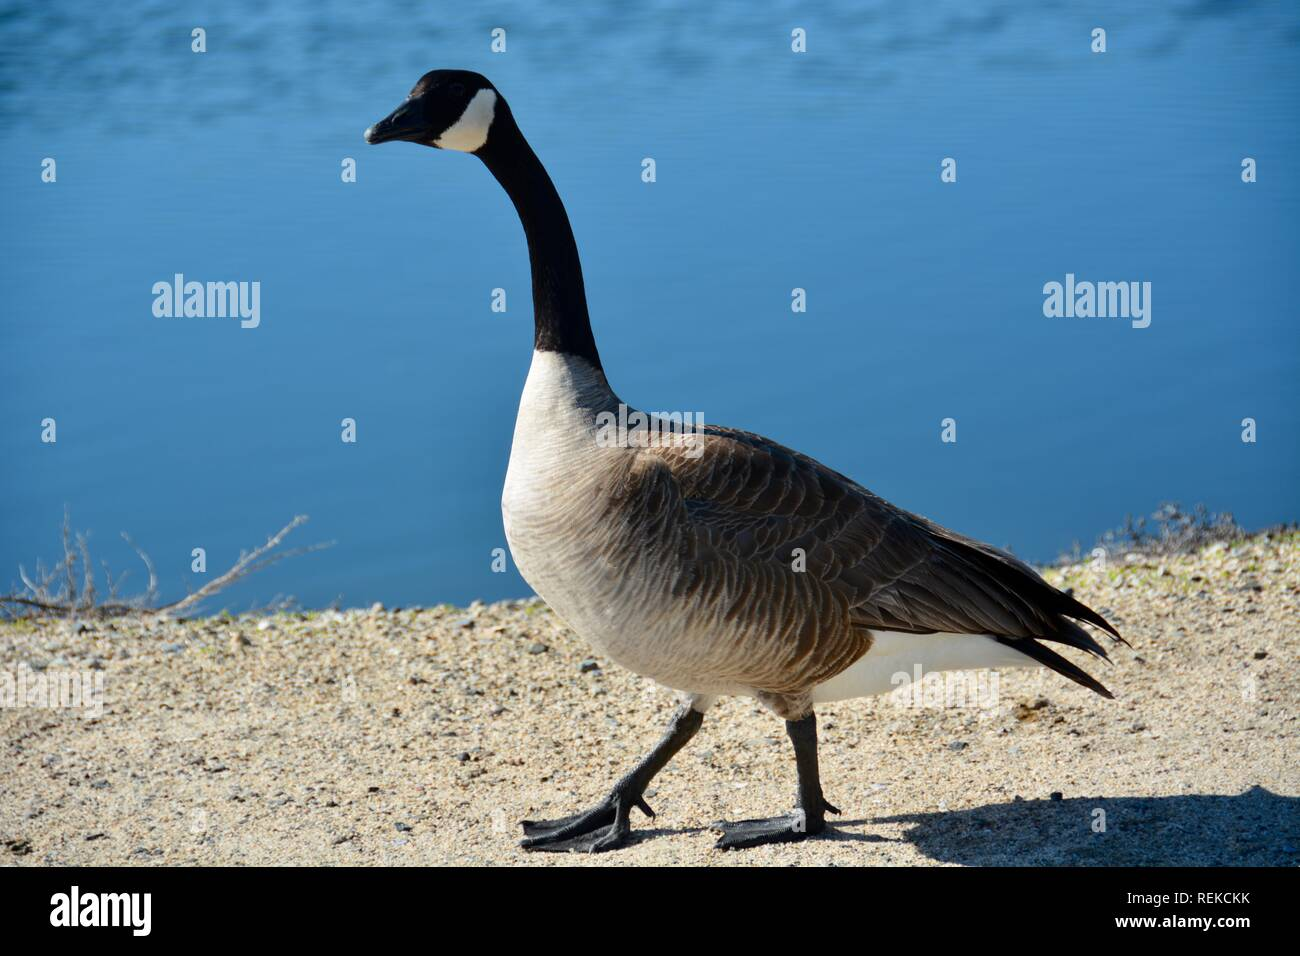 A Canada Goose walking near water's edge. Canada geese will attack people if they feel threatened, but this one just honked at me as he waddled past. - Stock Image